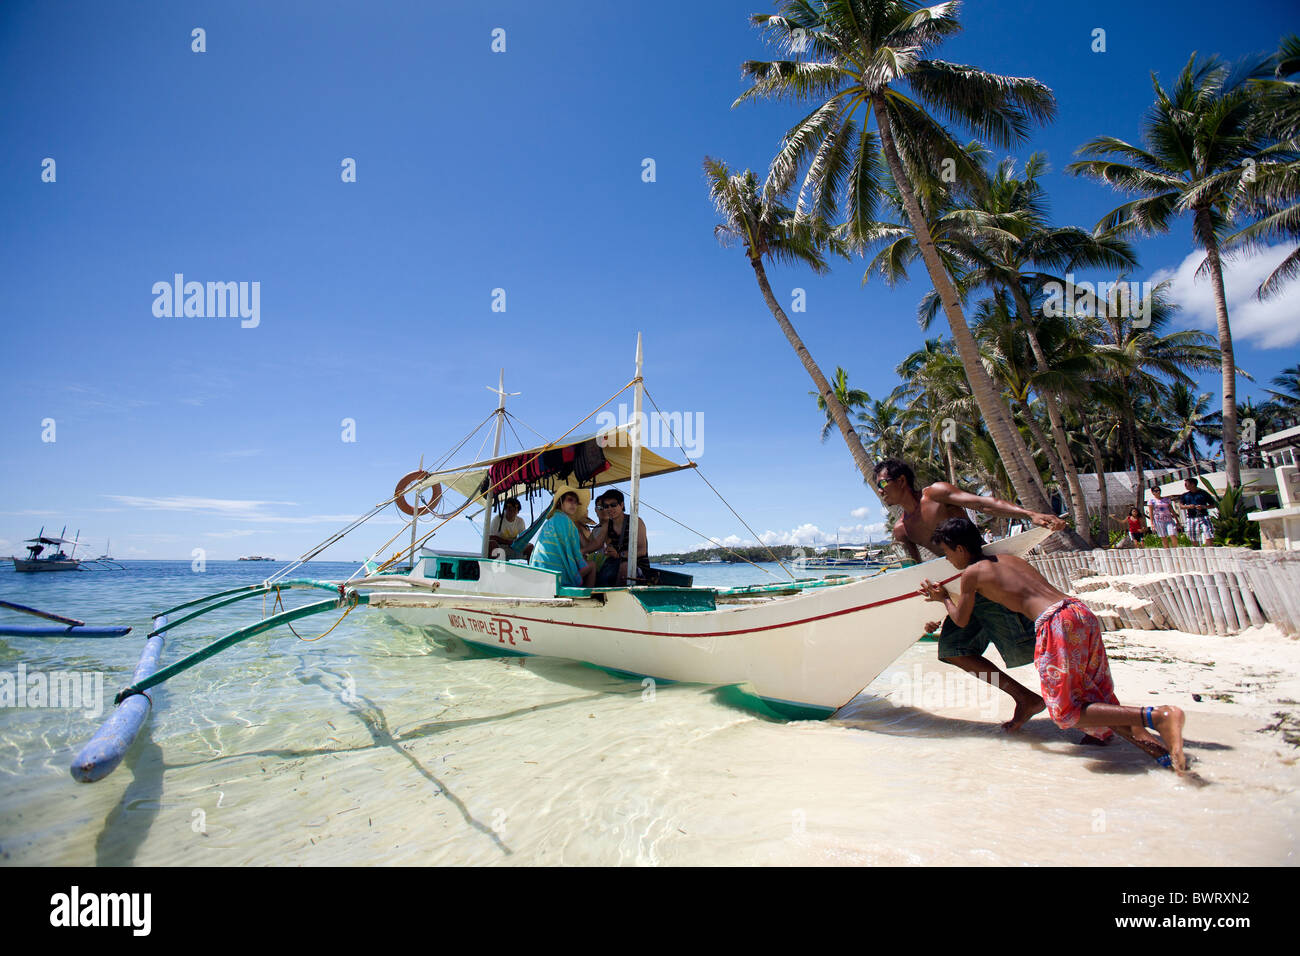 Filipinos shove a bangka boat loaded with tourists off of Bulabog Beach in Boracay, Philippines. - Stock Image